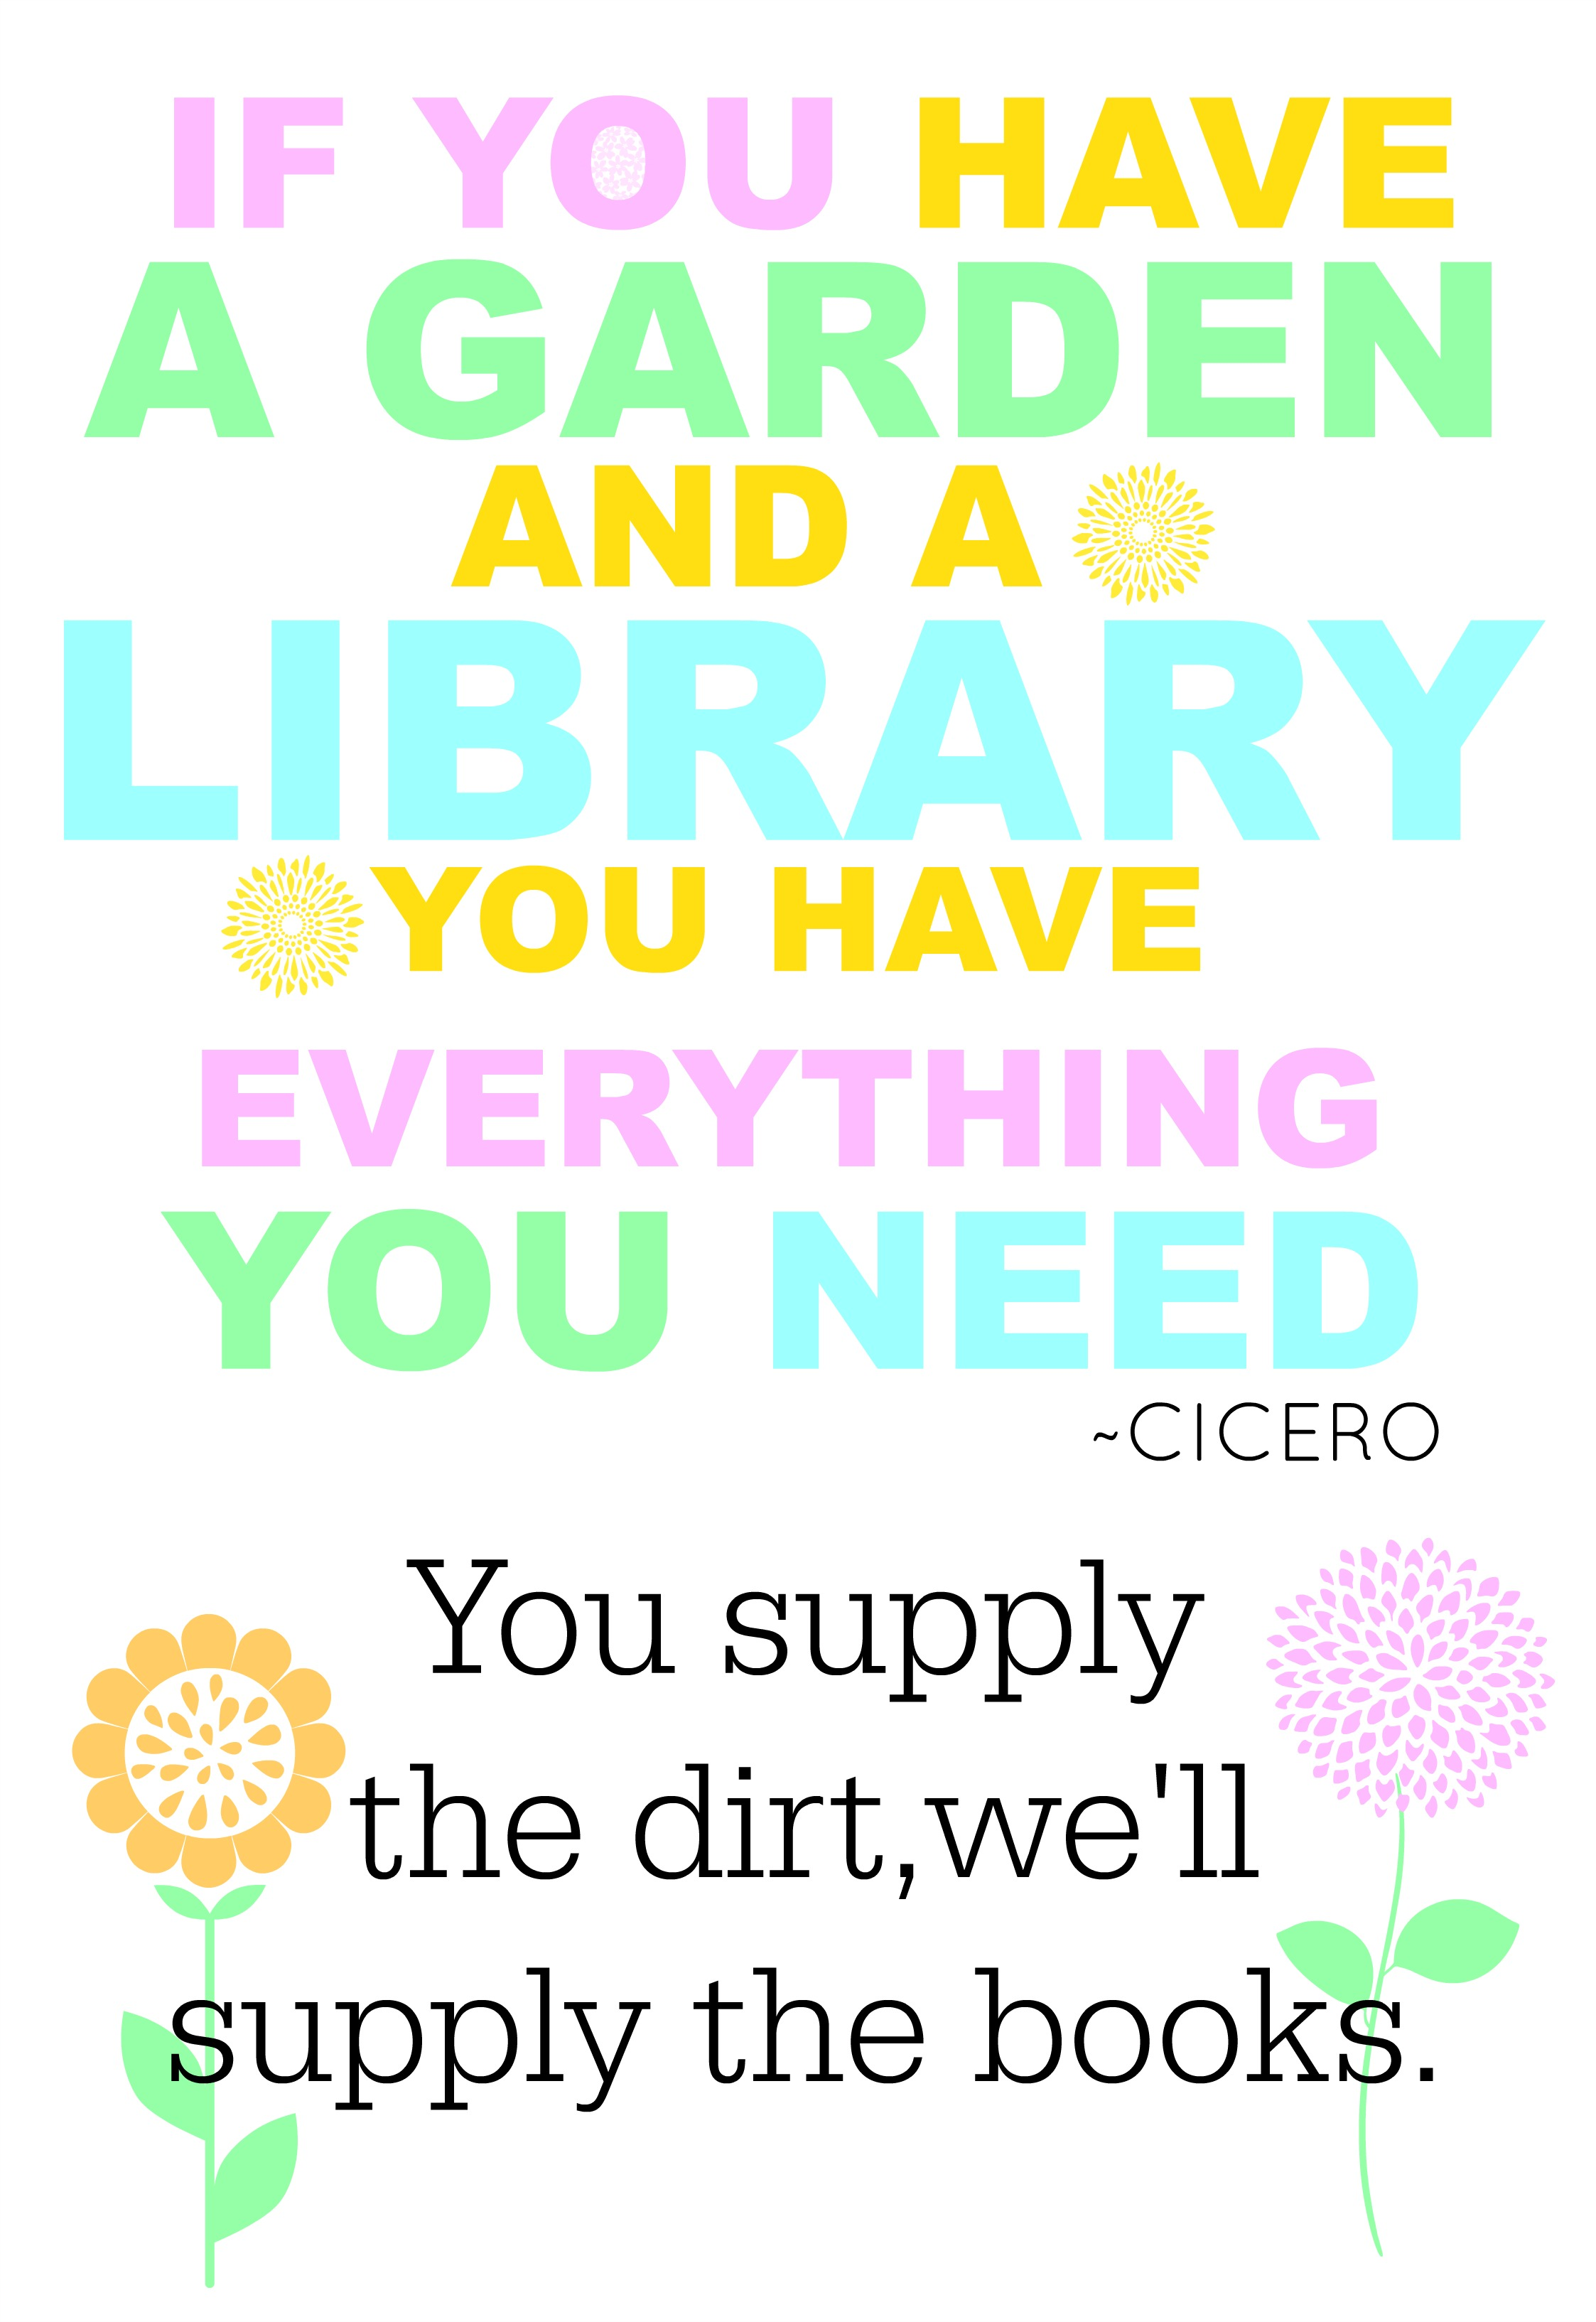 Perfect quote for Spring in the library! #library #display #spring #book #quote